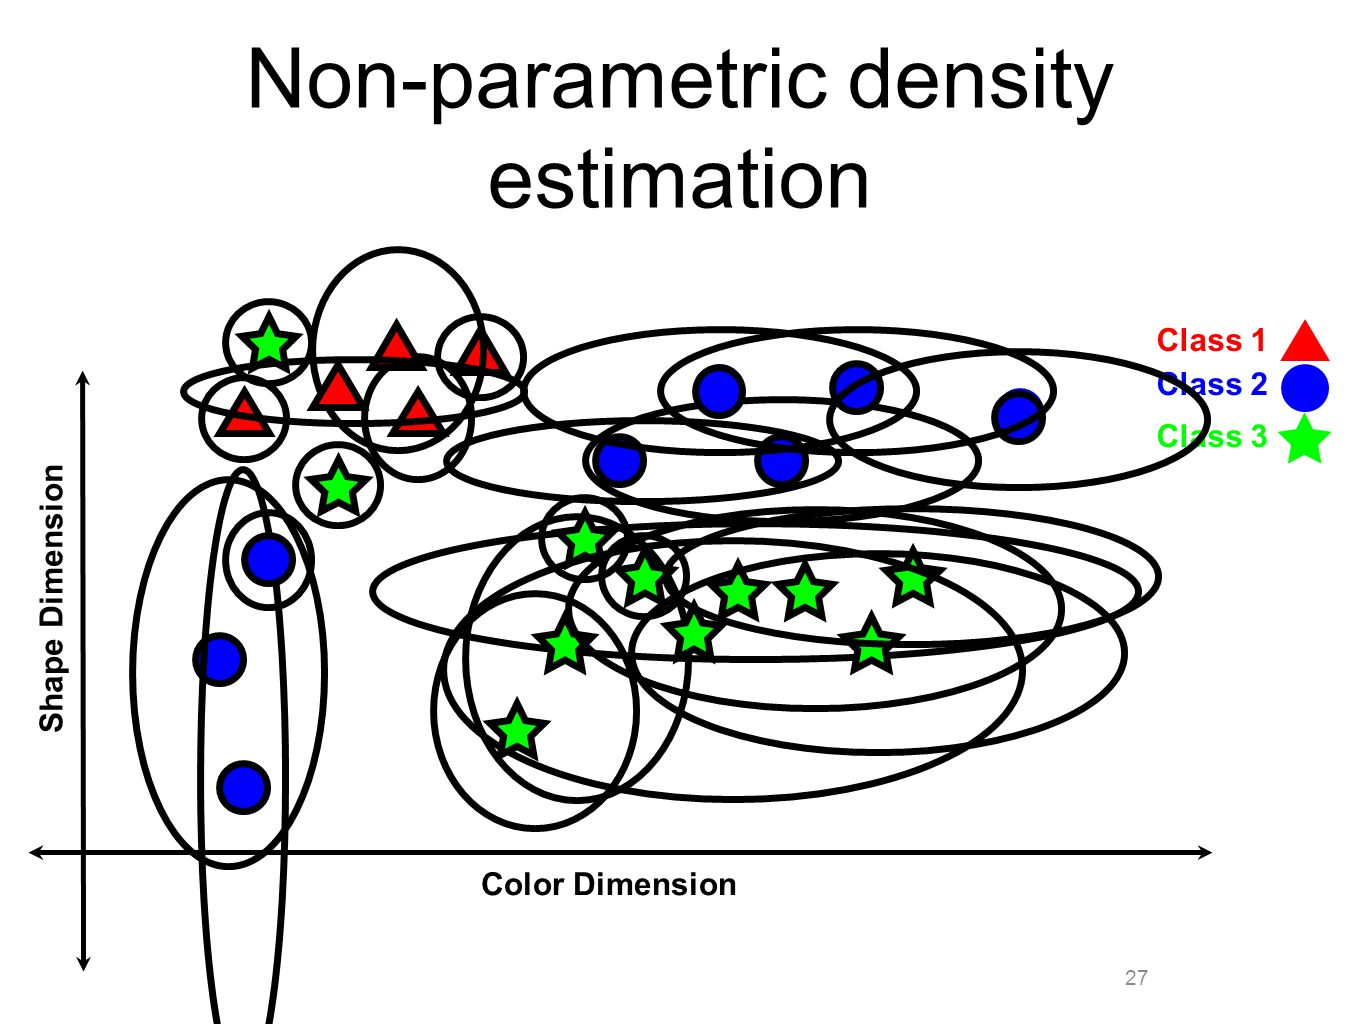 27 Non-parametric density estimation Color Dimension Shape Dimension Class 1 Class 2 Class 3